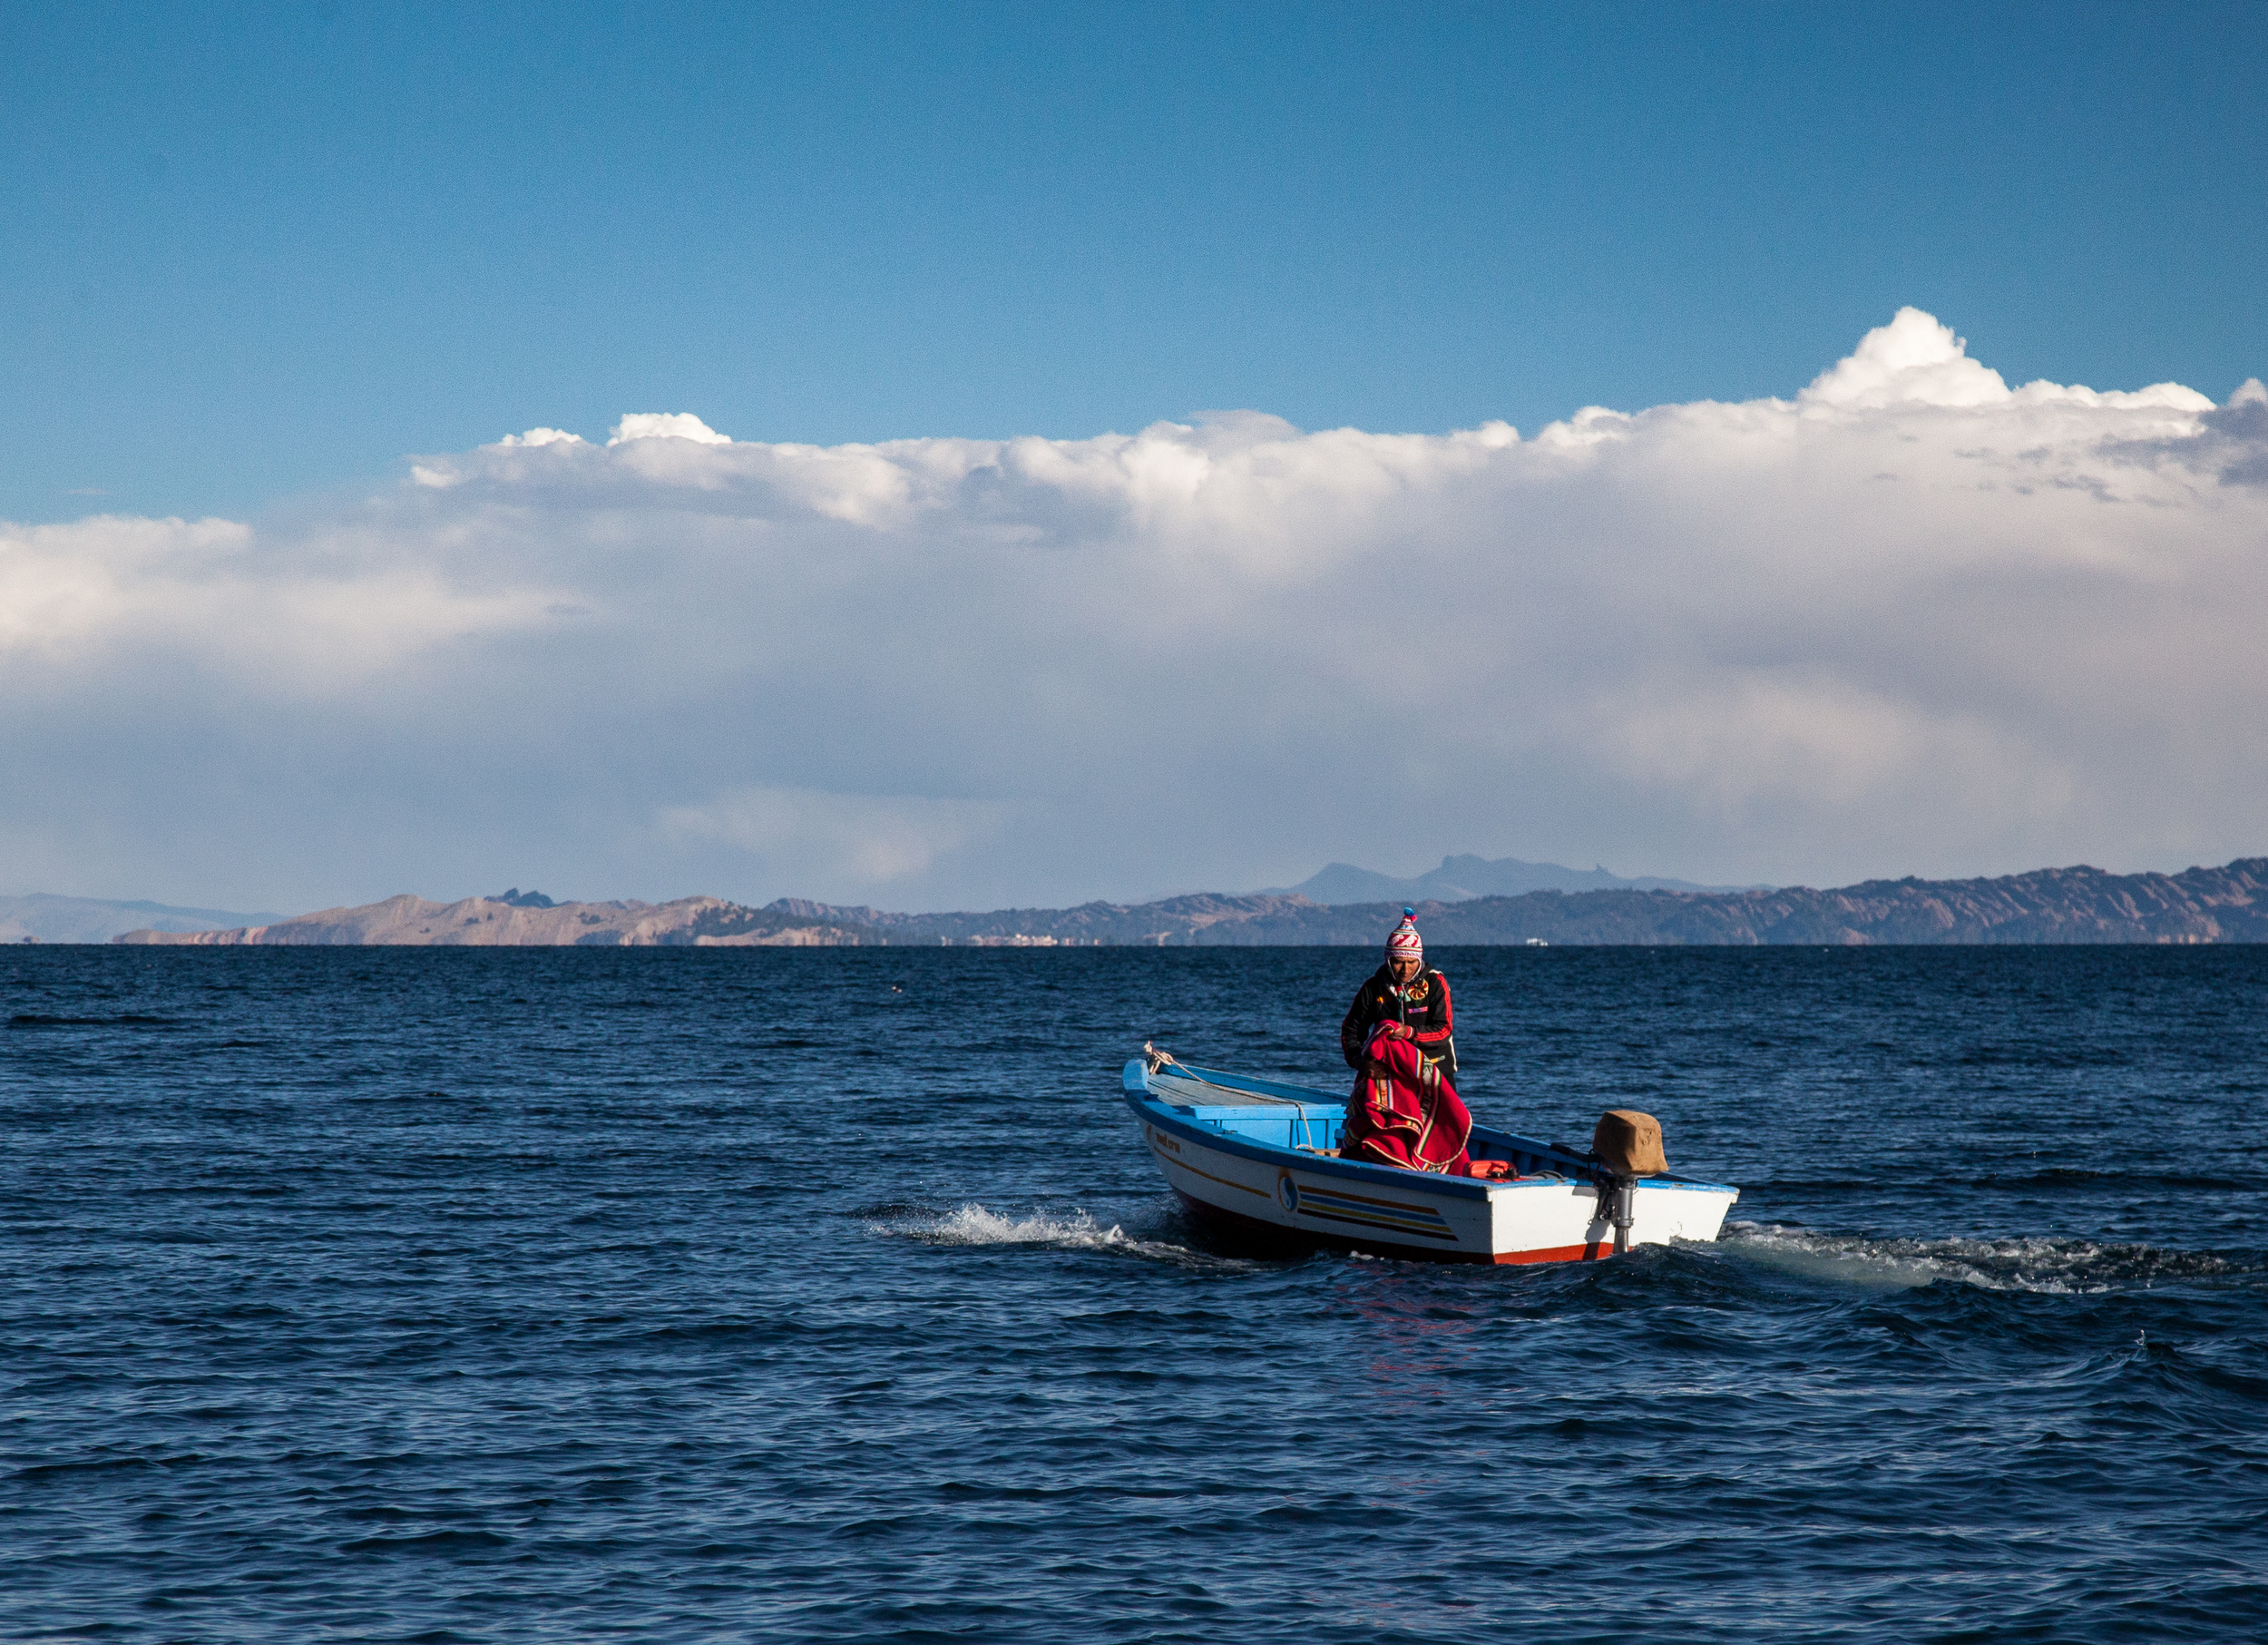 Boats like this are the primary means of transport around Lake Titicaca. We took one the following day to get to the Uros Islands and Taquile.